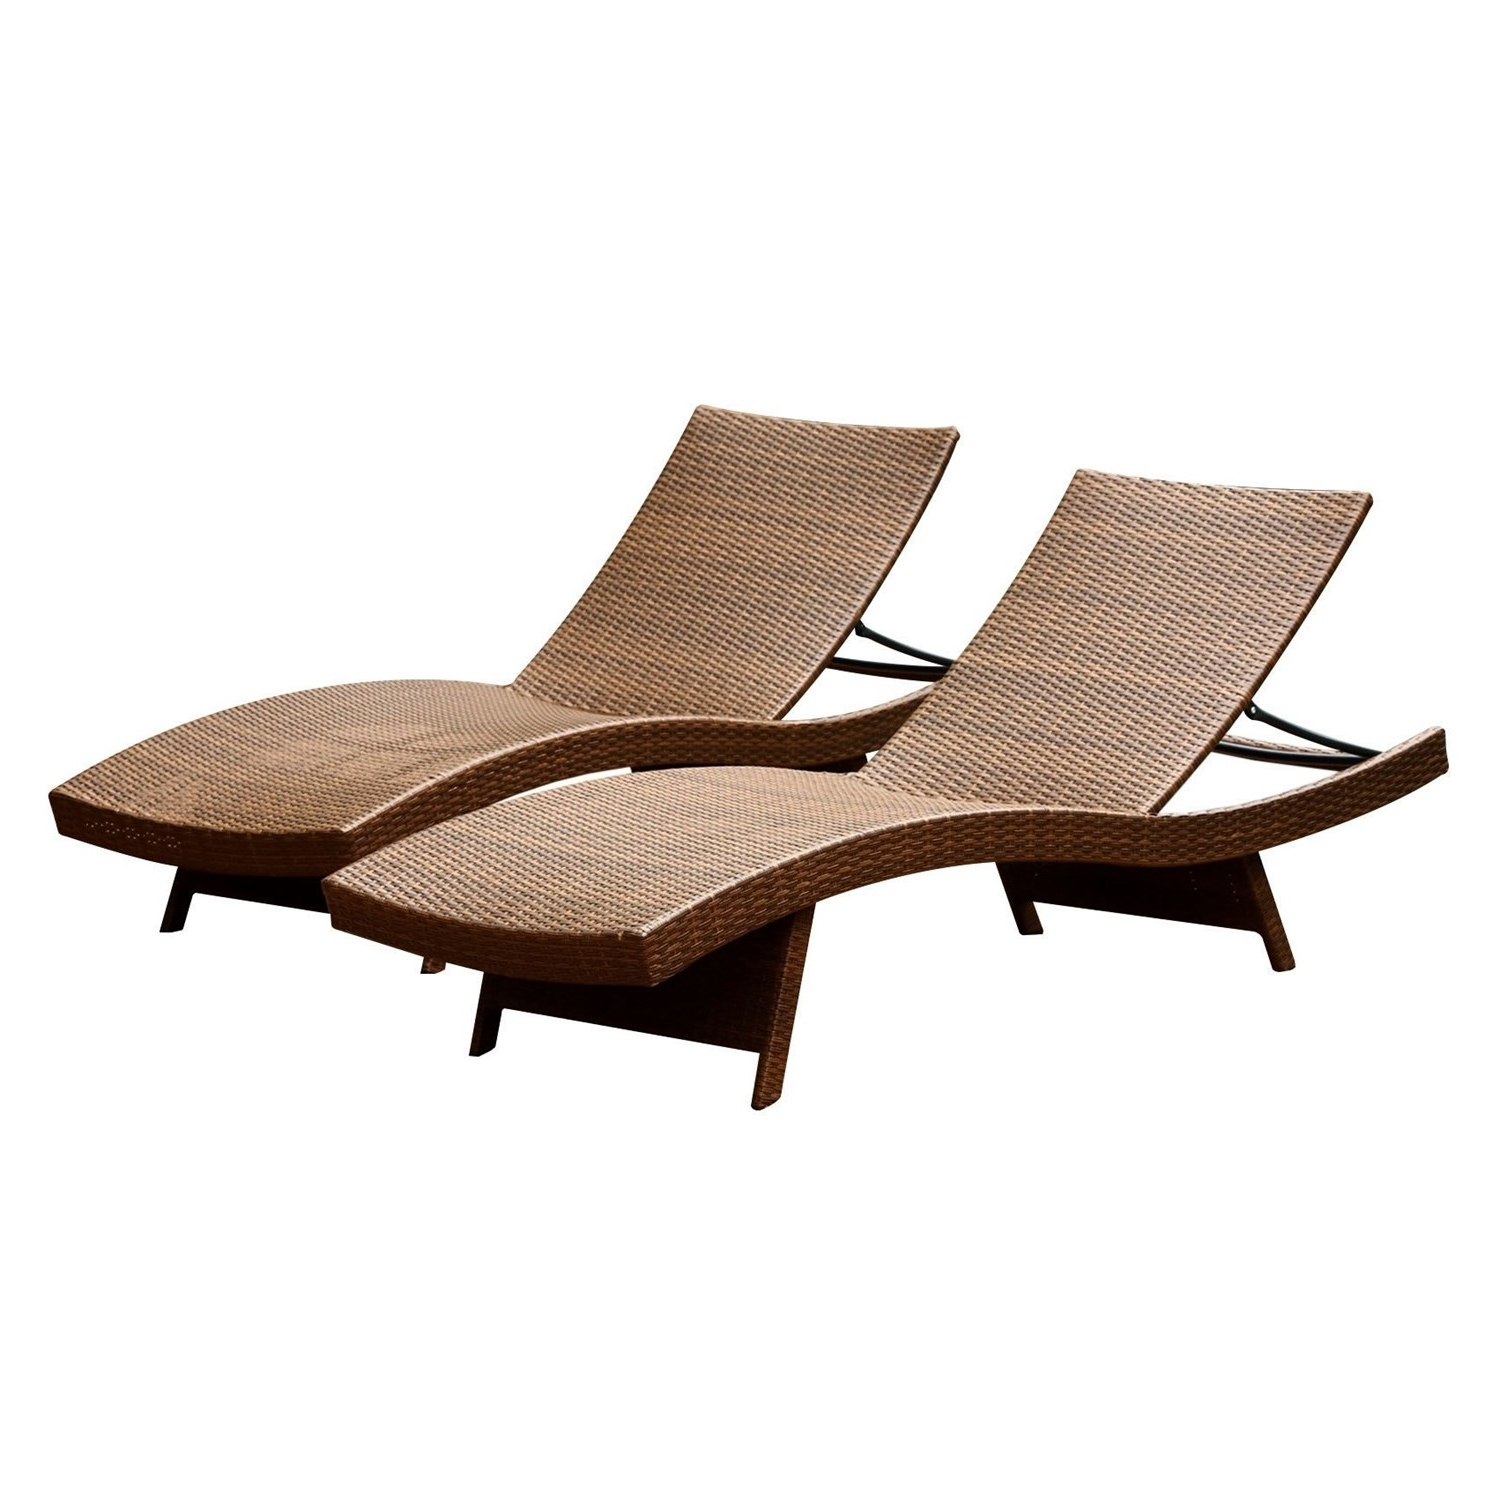 Adjustable Chaise Lounges With Regard To Recent Abbyson Living Dl Rlc150 Brn Set2 Palermo Outdoor Adjustable Brown (View 6 of 15)